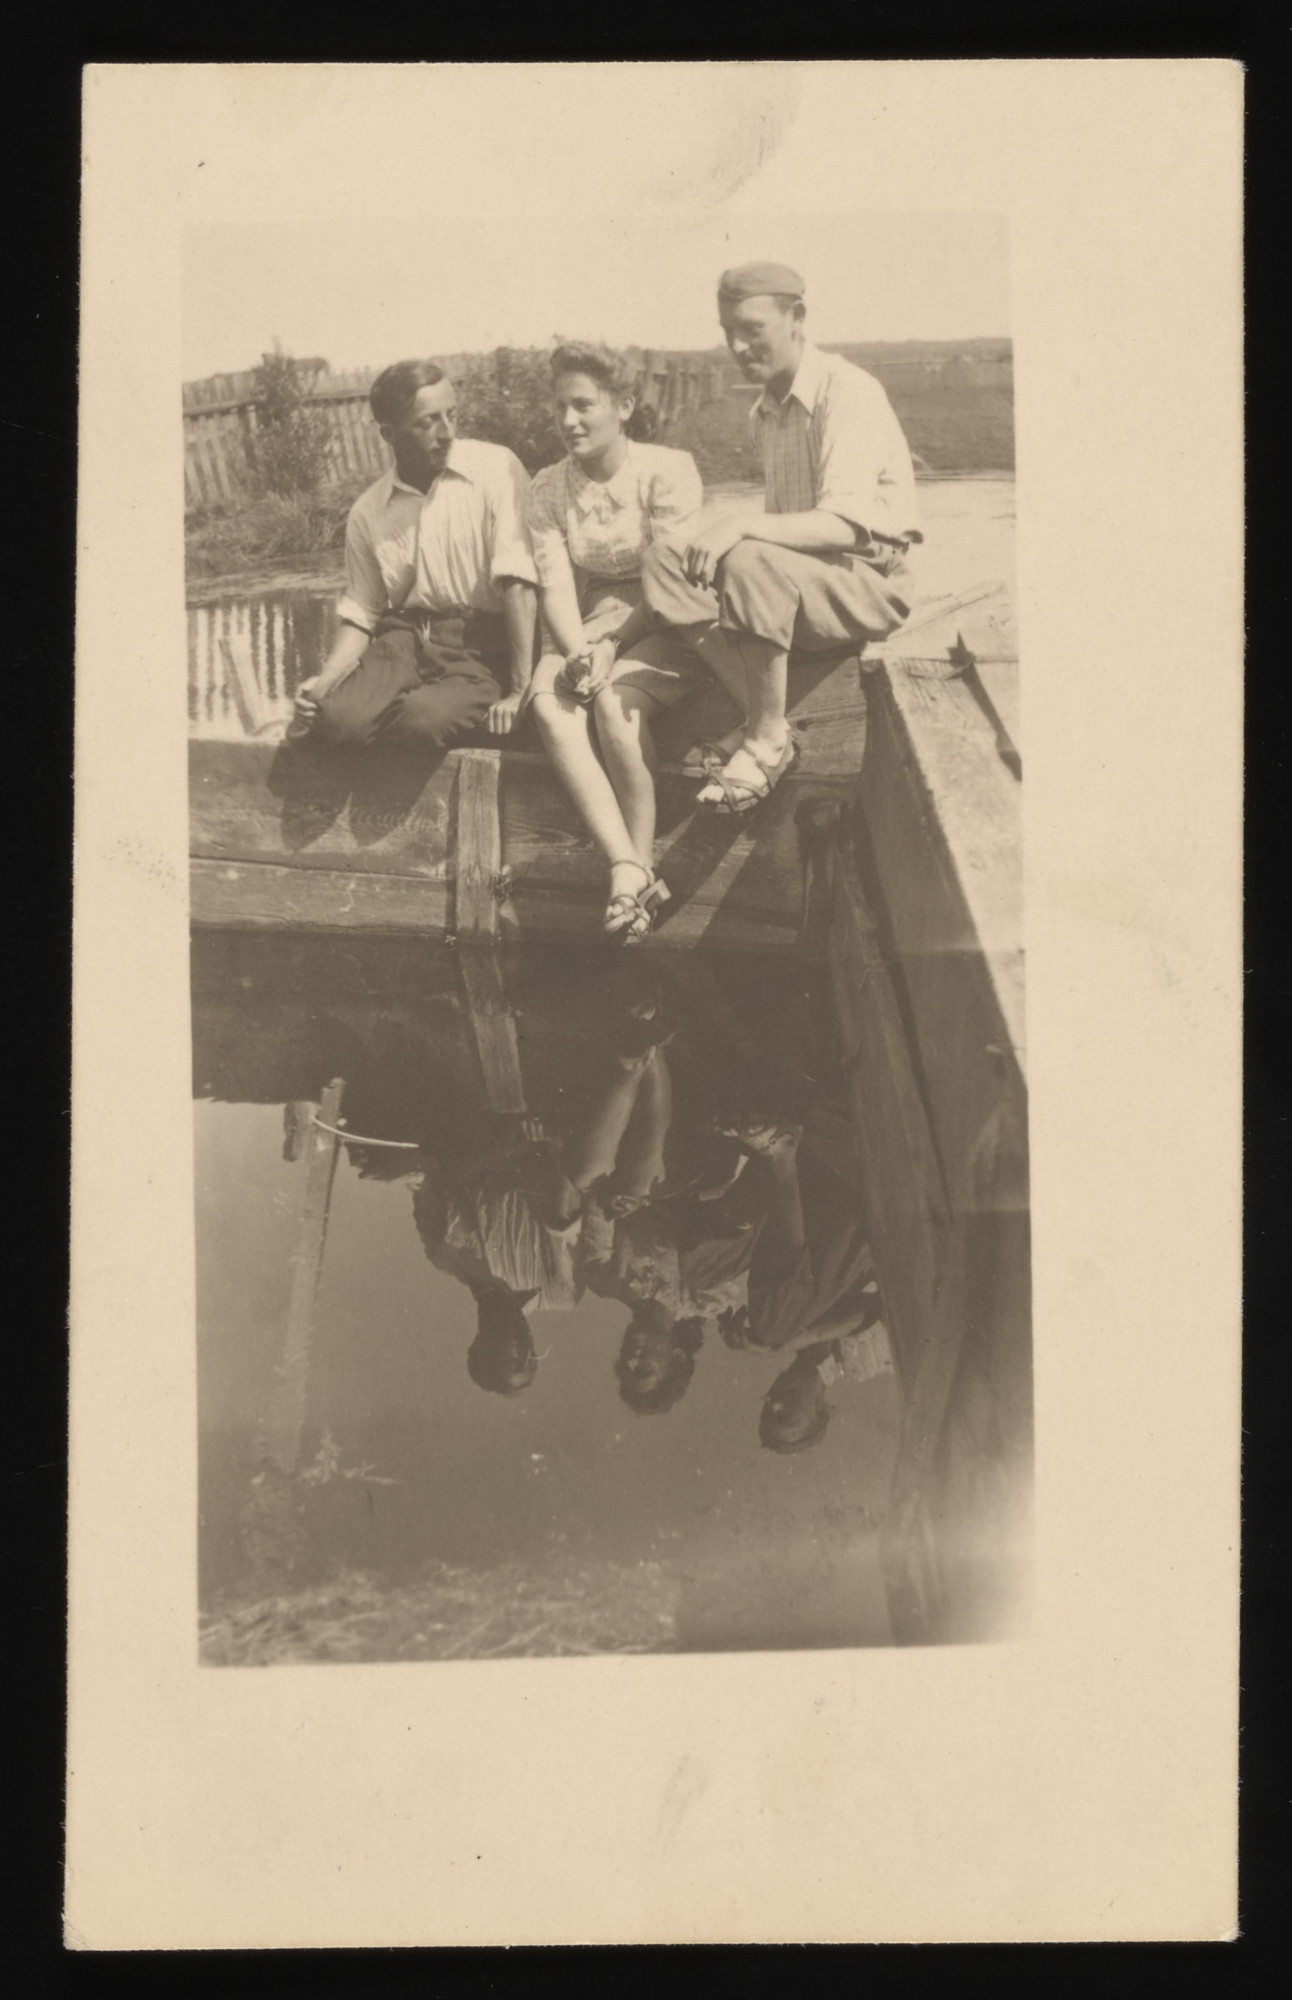 Two young men and a young woman sit near the water in the Kolbuszowa ghetto   Pictured from left to right are: Noah Huttner, Rozia Susskind, and Szmuel Weichselbaum, all friends of Naftali Saleschütz.